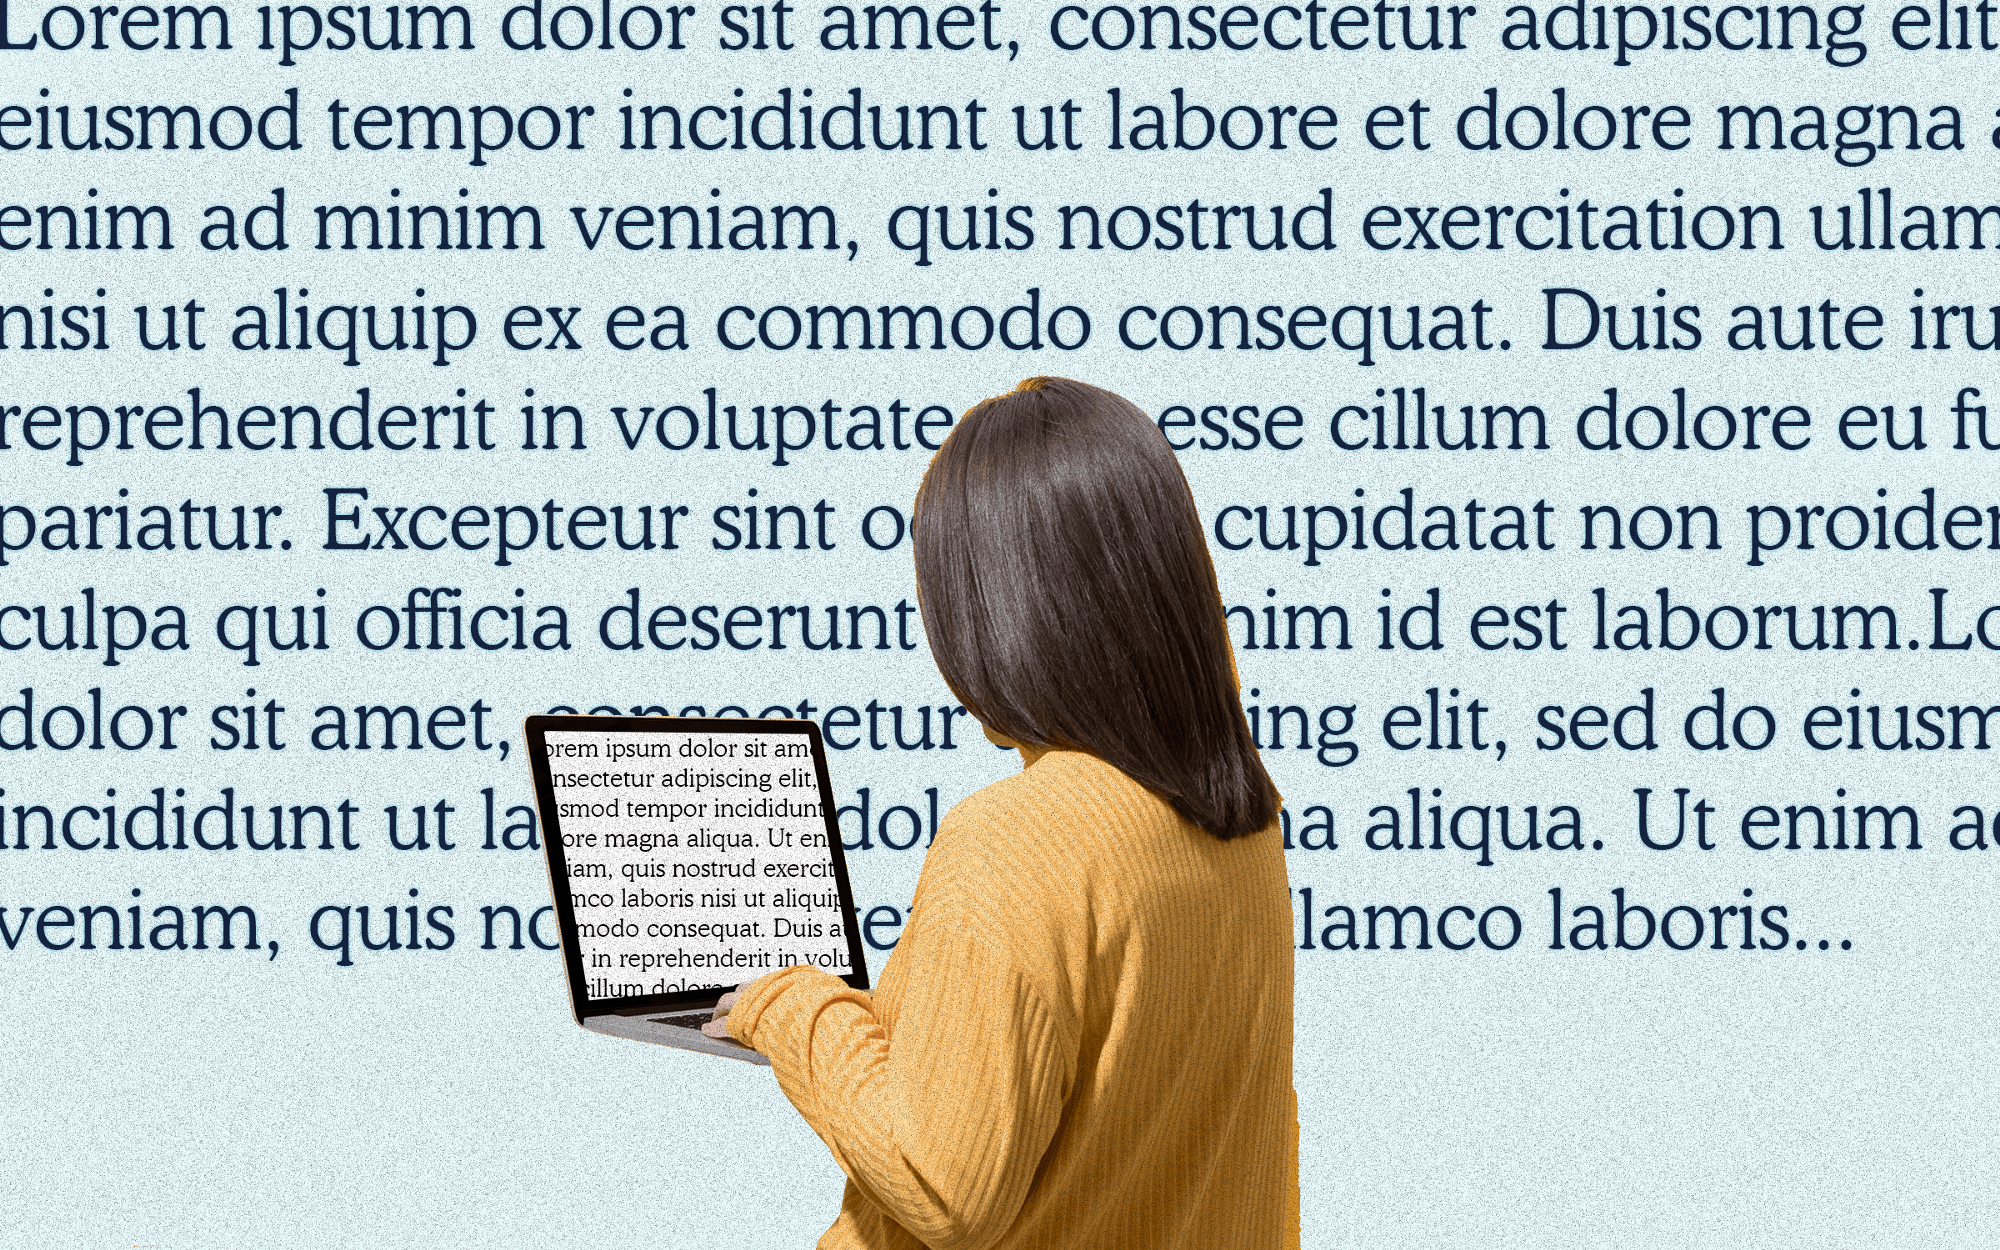 A collage image of a woman on her laptop, with lorem ipsum text as the background.